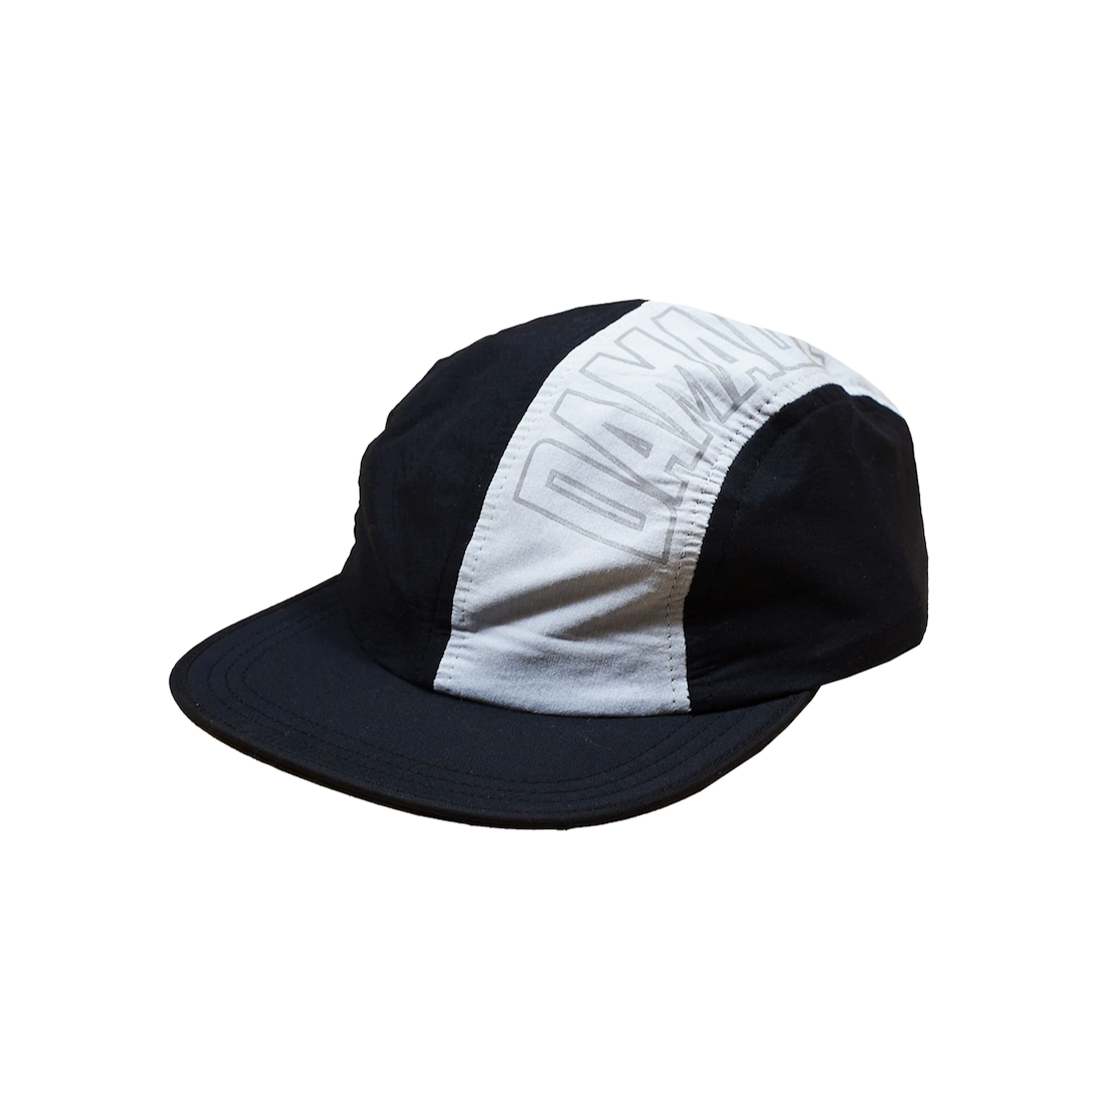 【DAMAGE LTD】4 Panel Tech Cap - Black/Grey